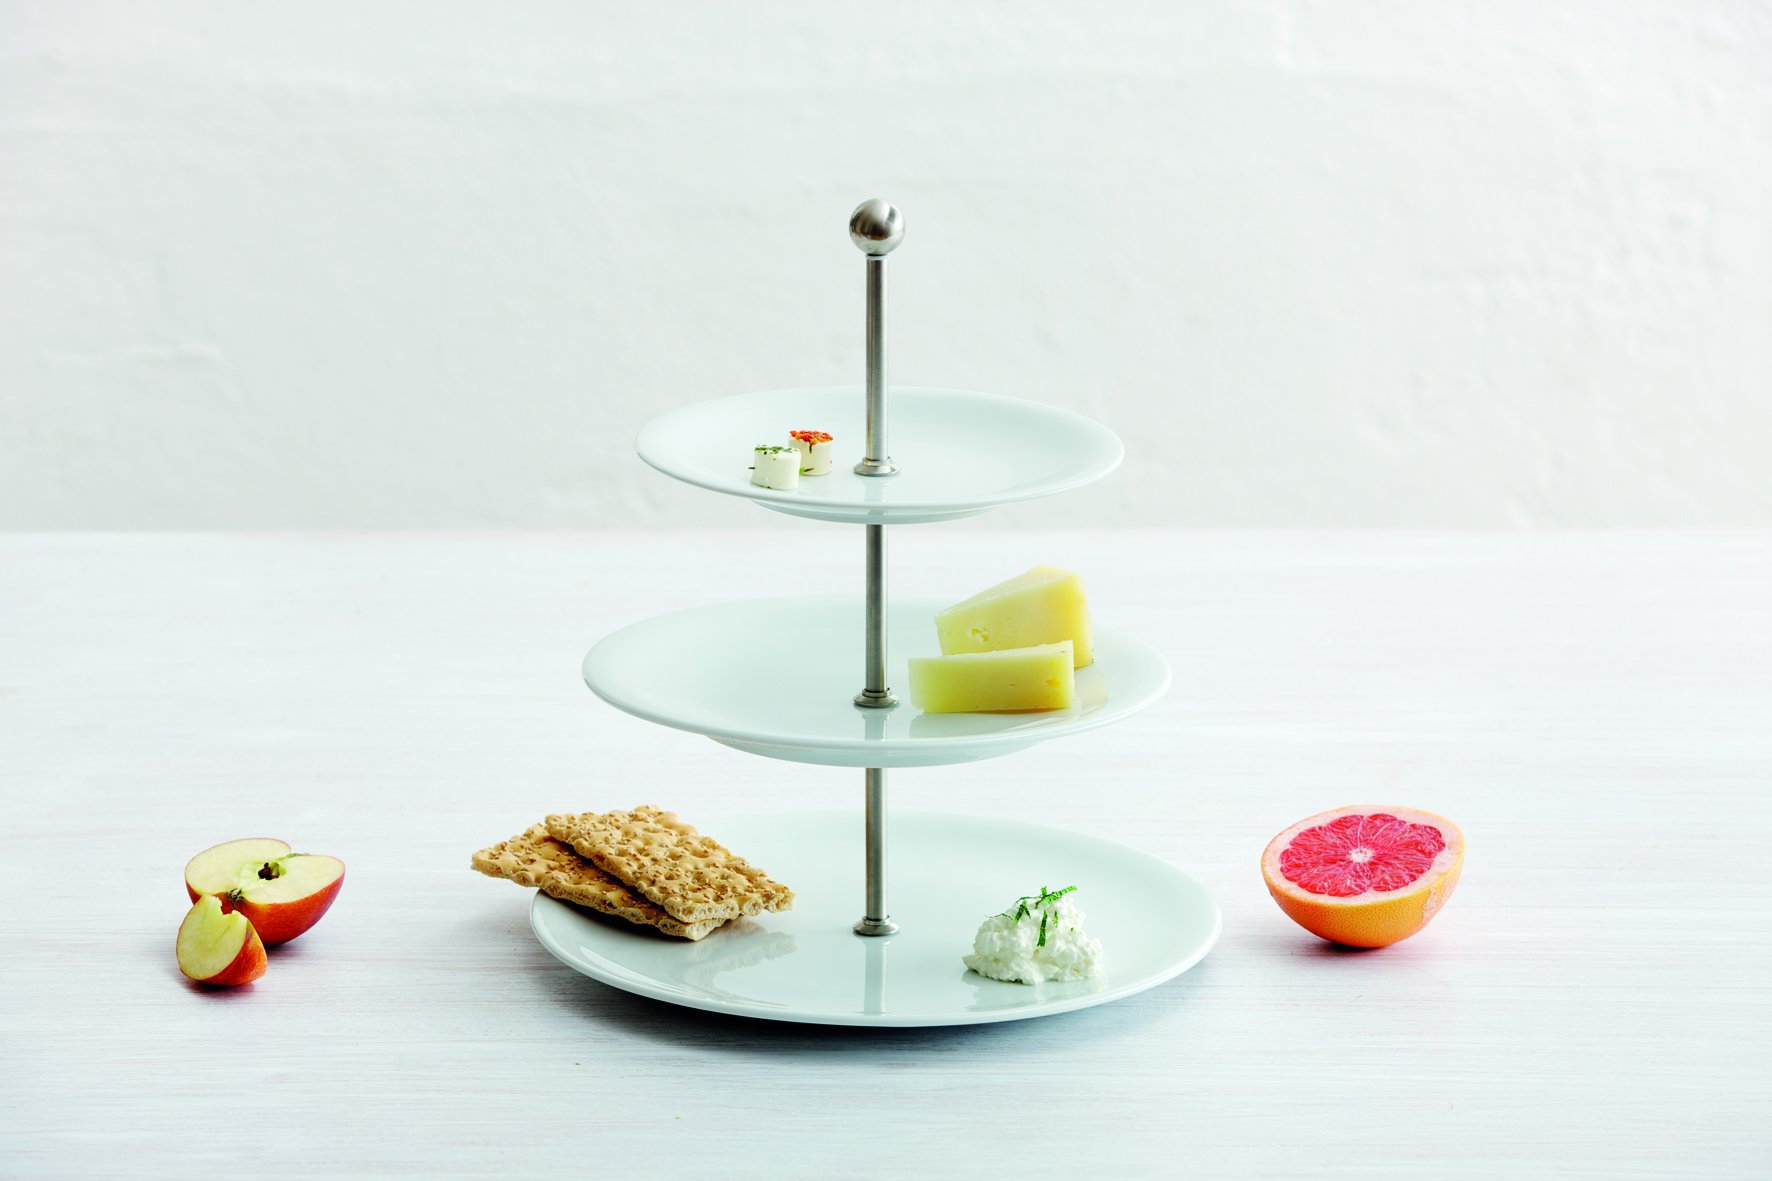 KAHLA Update Stand, 3-piece, White Color, 1 Piece by KAHLA - PORCELAIN FOR THE SENSES (Image #2)